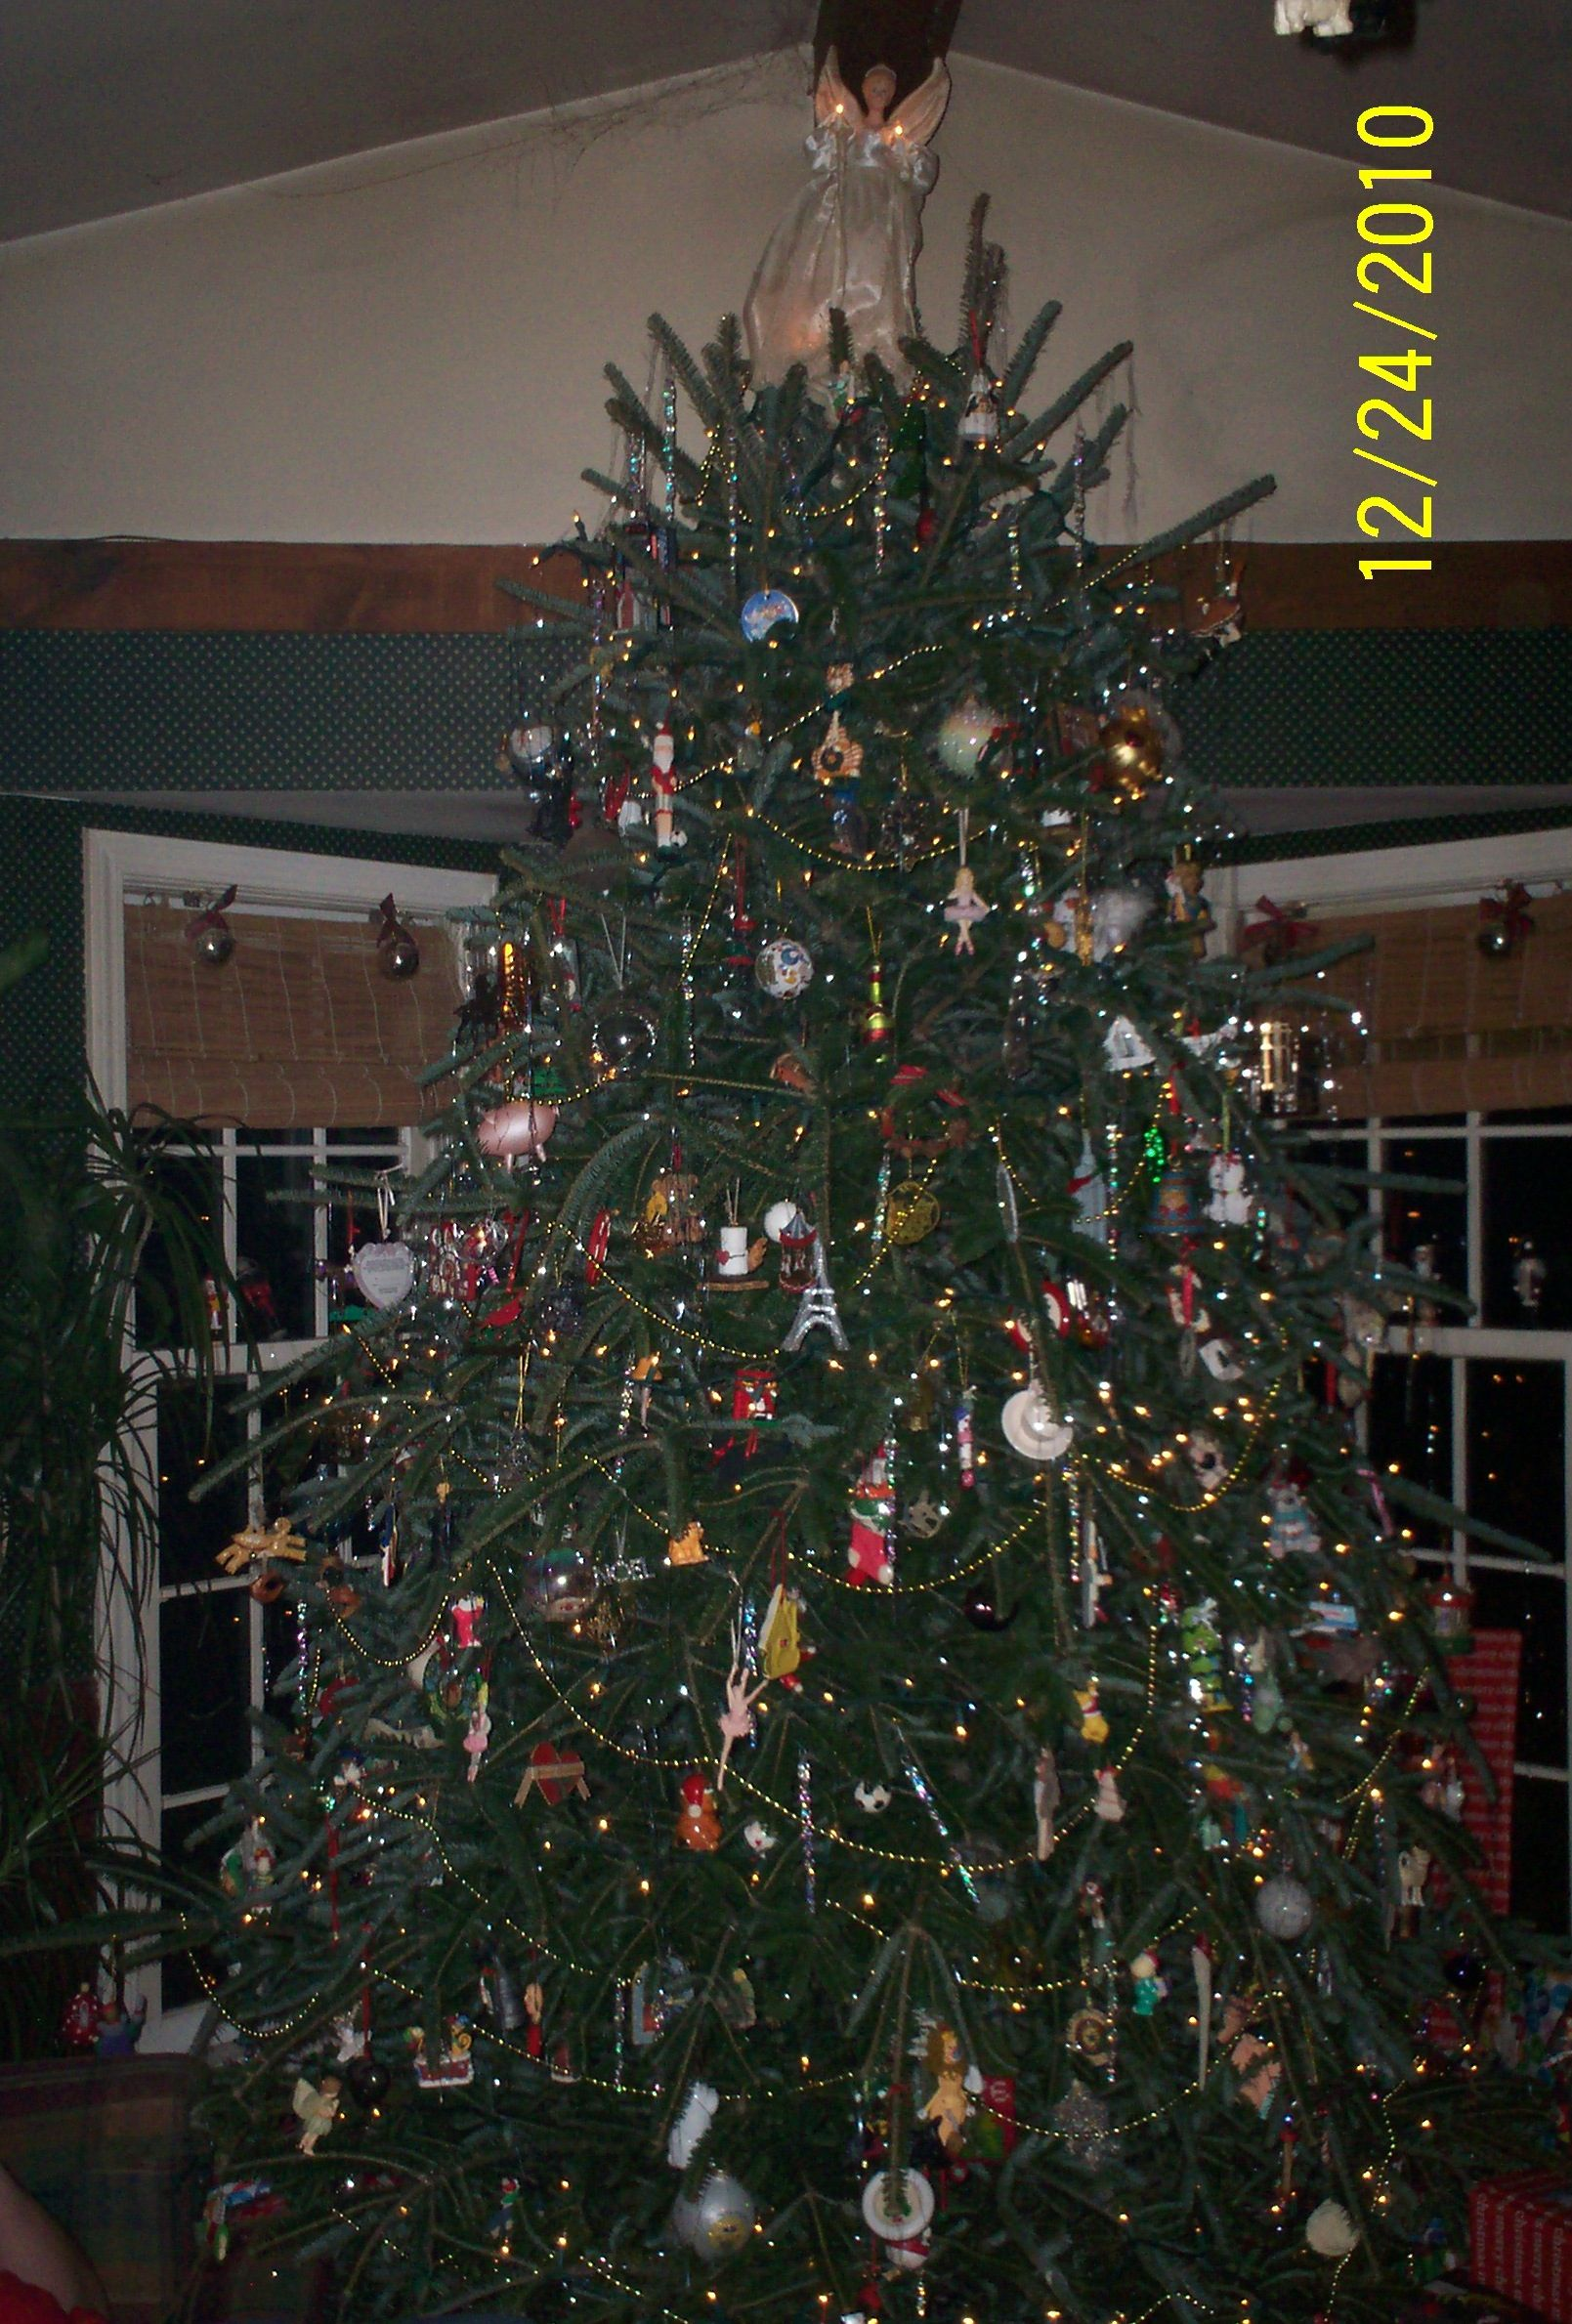 I Wish We Could Keep Our Christmas Tree All Year And I Would Dust More Often Christmas Tree Tree Holiday Decor